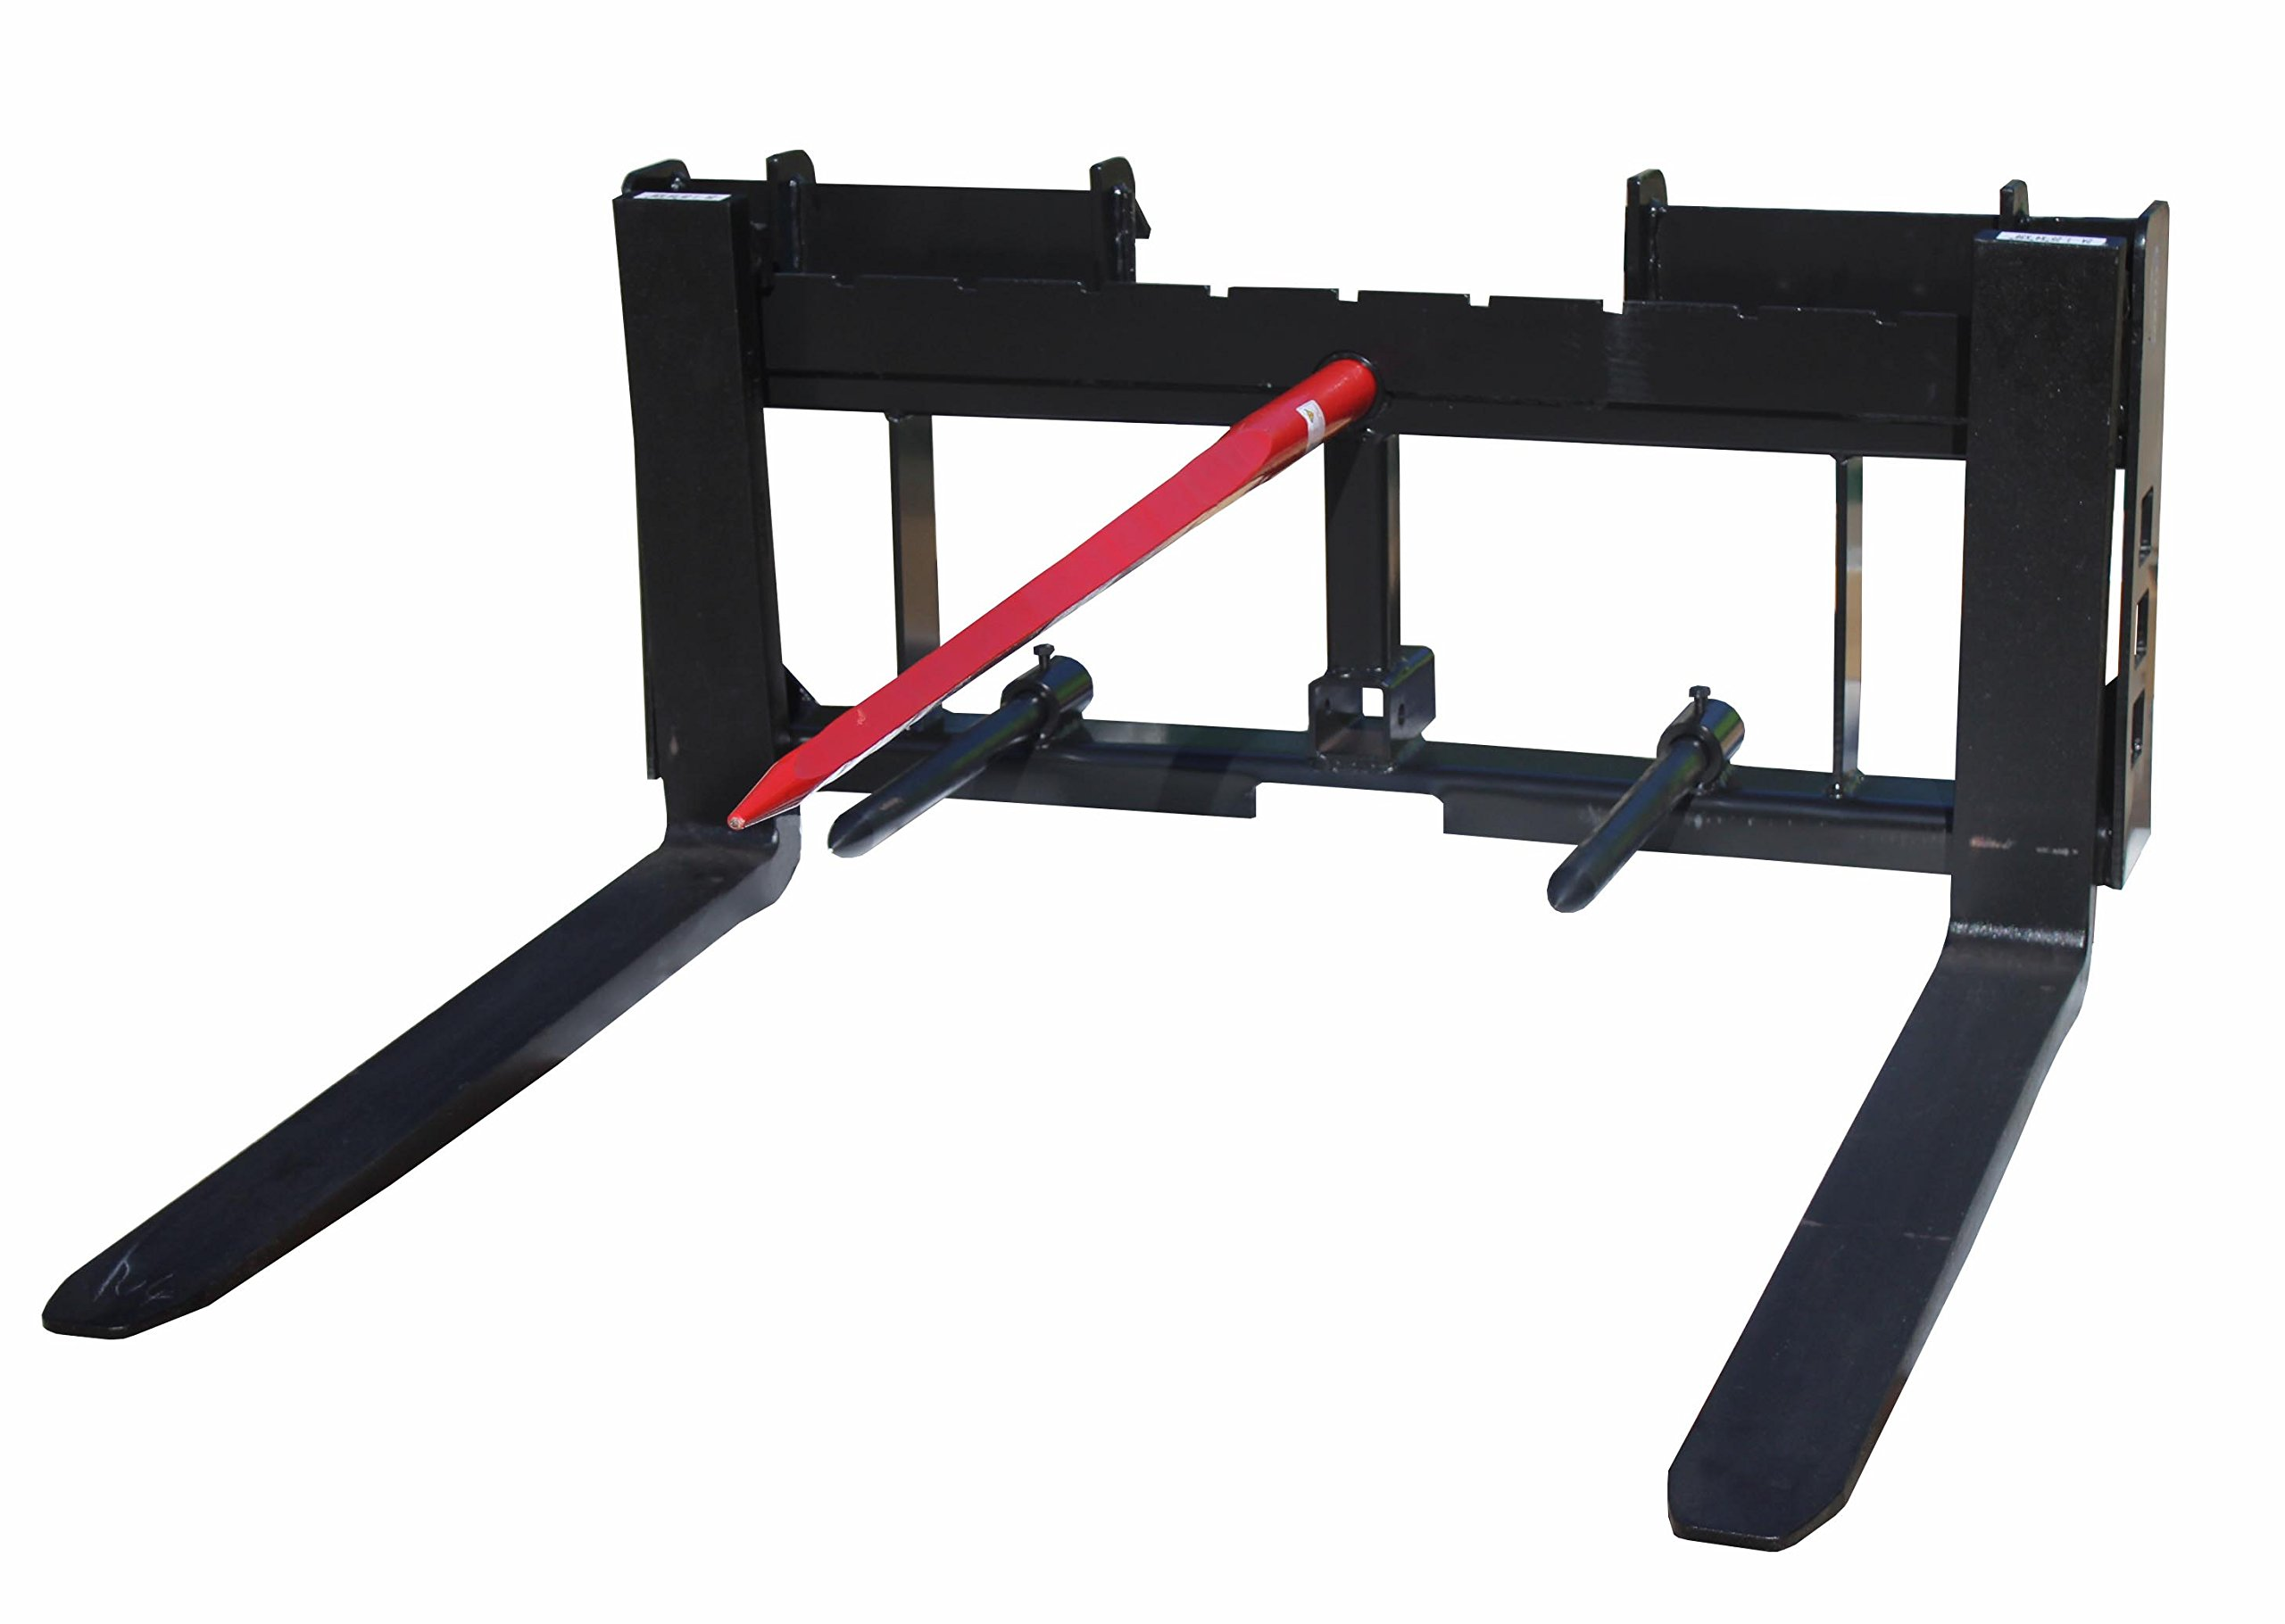 Titan Skid Steer 42'' Pallet Fork Attachment and 49'' Hay Bale Spear for Tractors by Titan Attachments